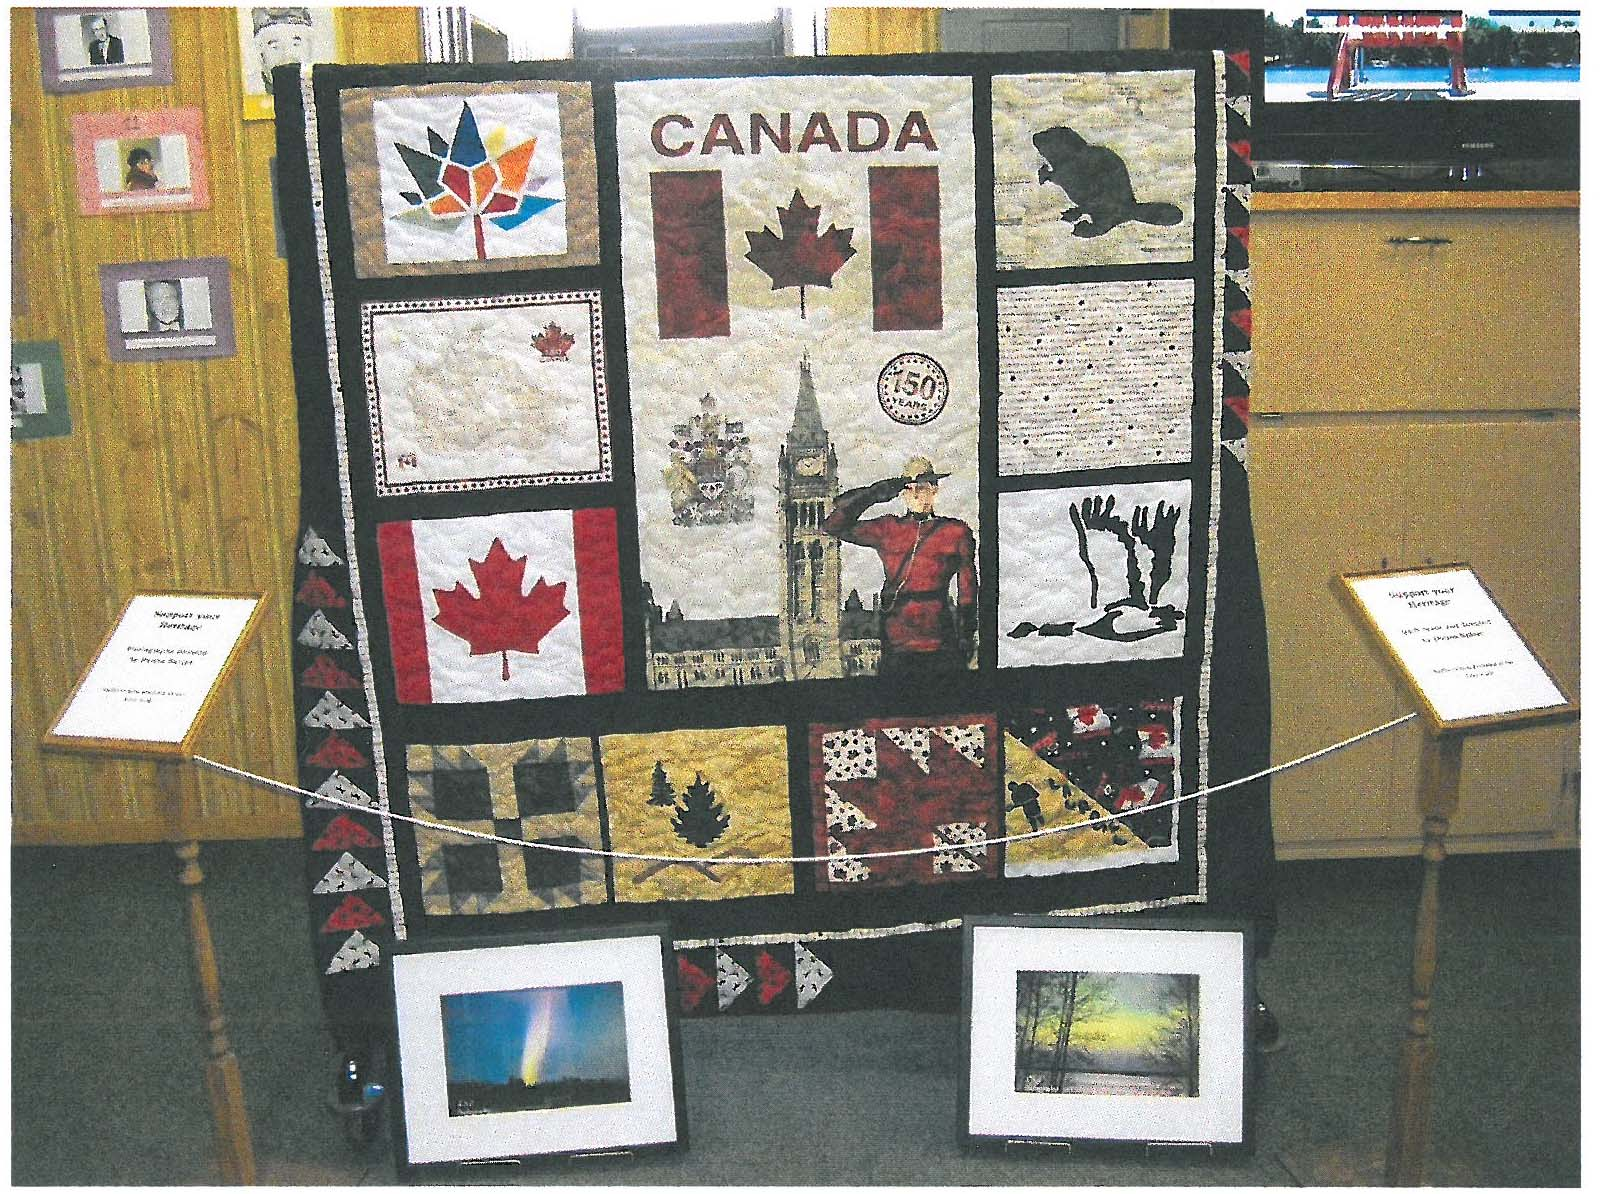 Canada 150 Raffle prizes, quilt and framed pictures